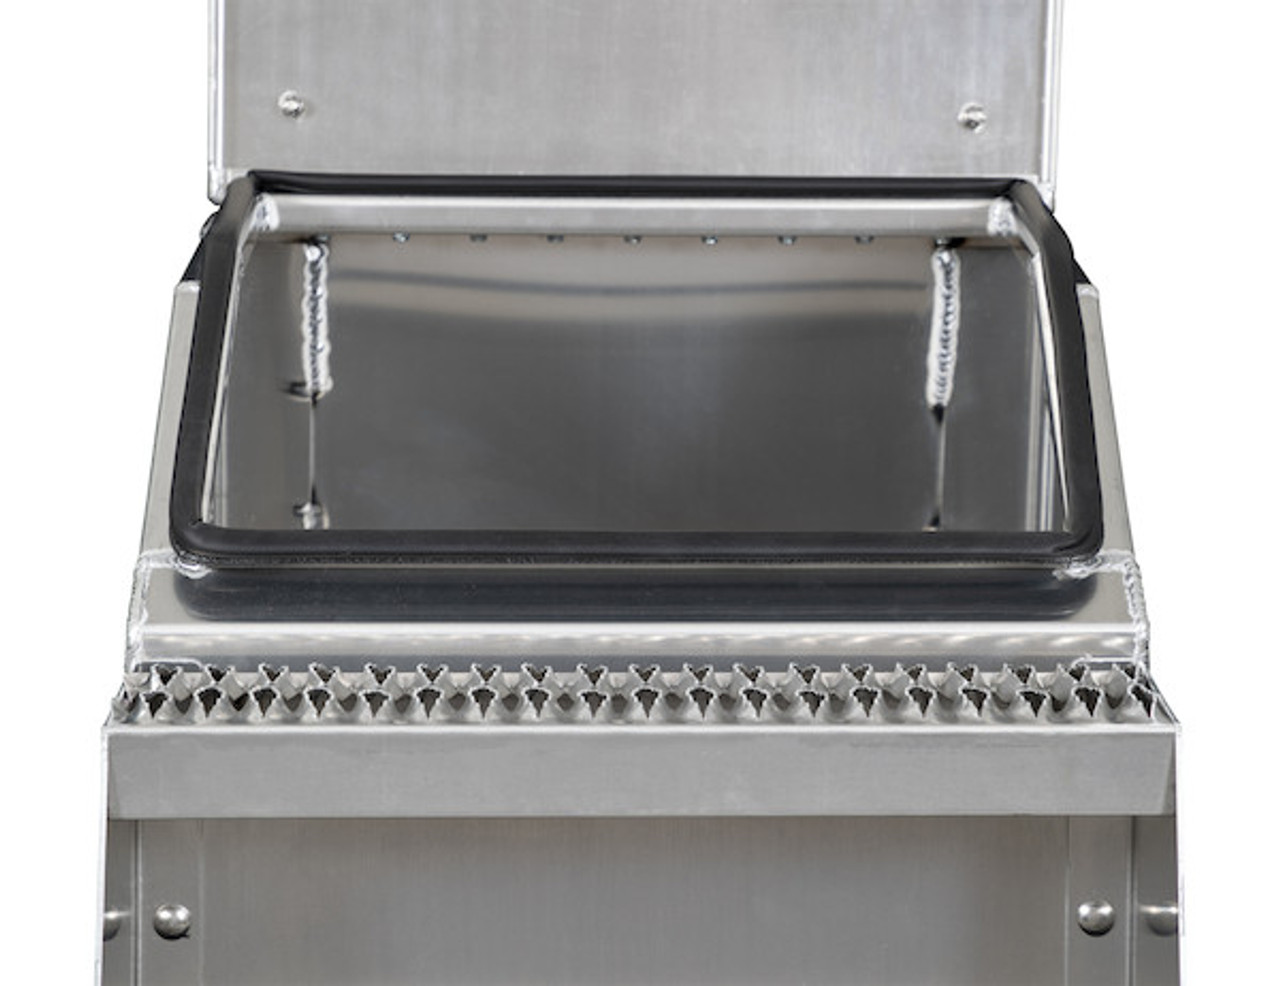 1705286 BUYERS PRODUCTS WideOpen™ Class 8 Step Tool Box For Semi Trucks - 22 Inch Width 5